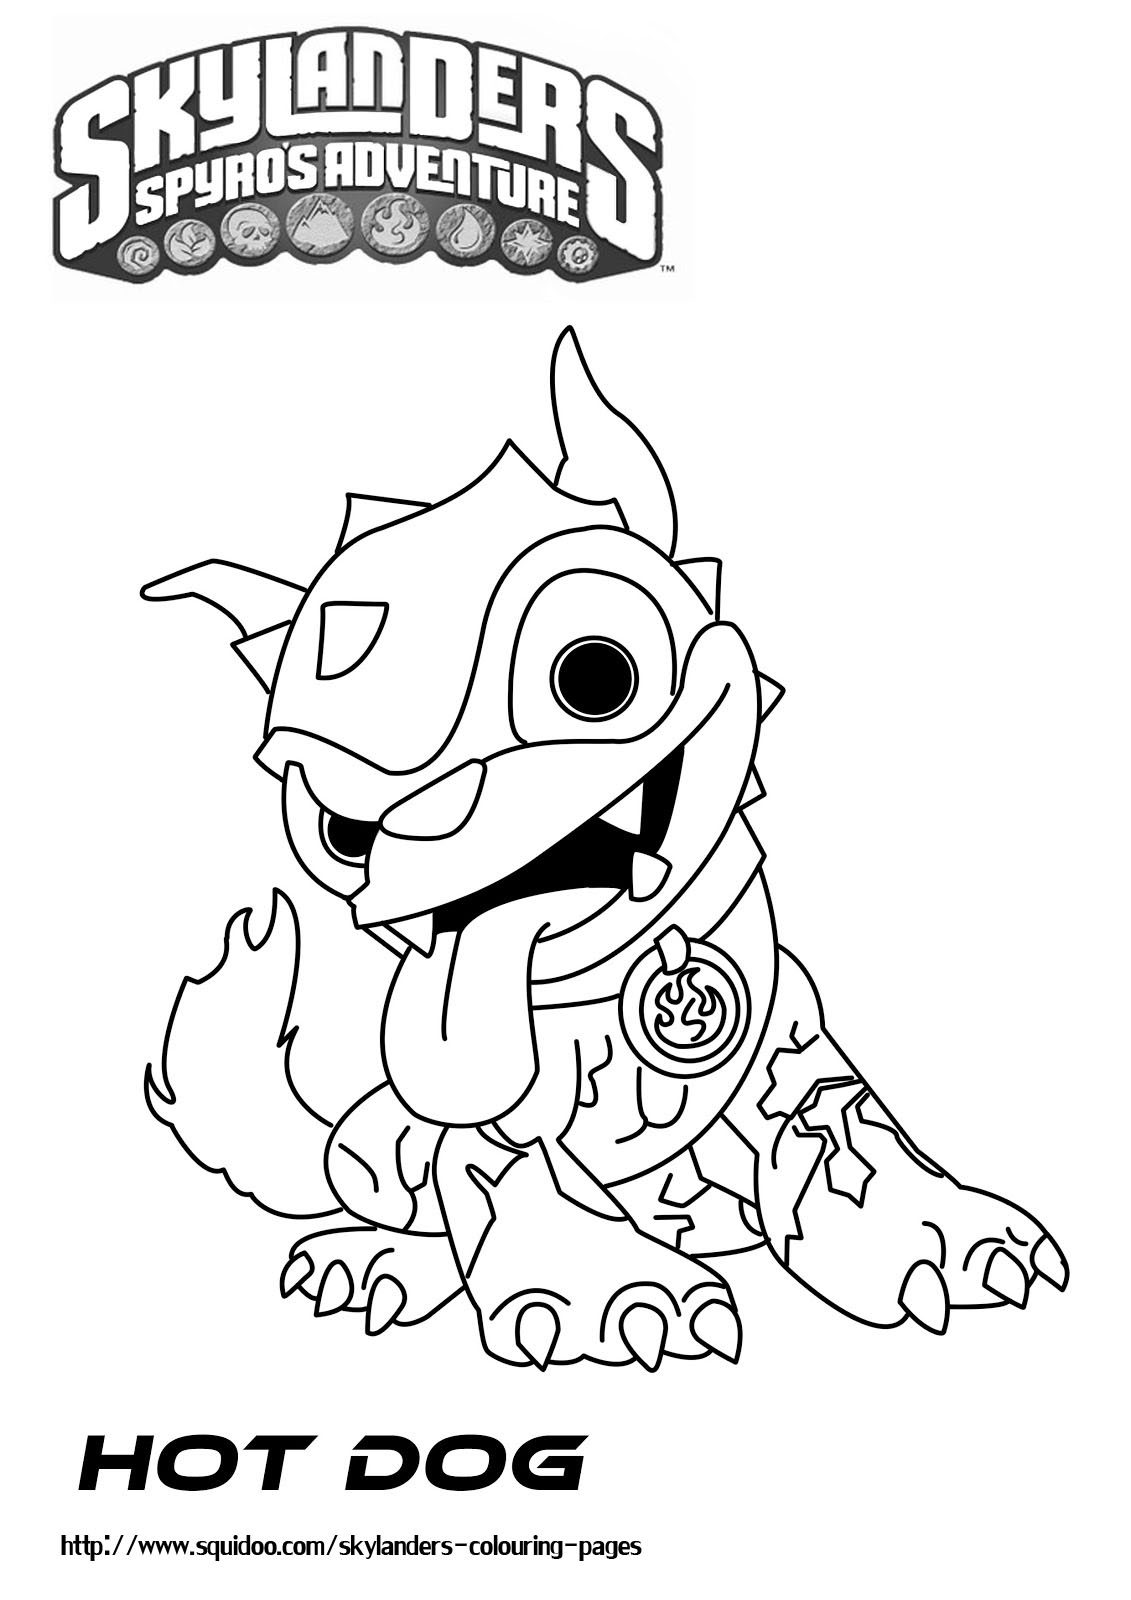 coloring page hot dog - skylanders giants thumpback in free colouring pages